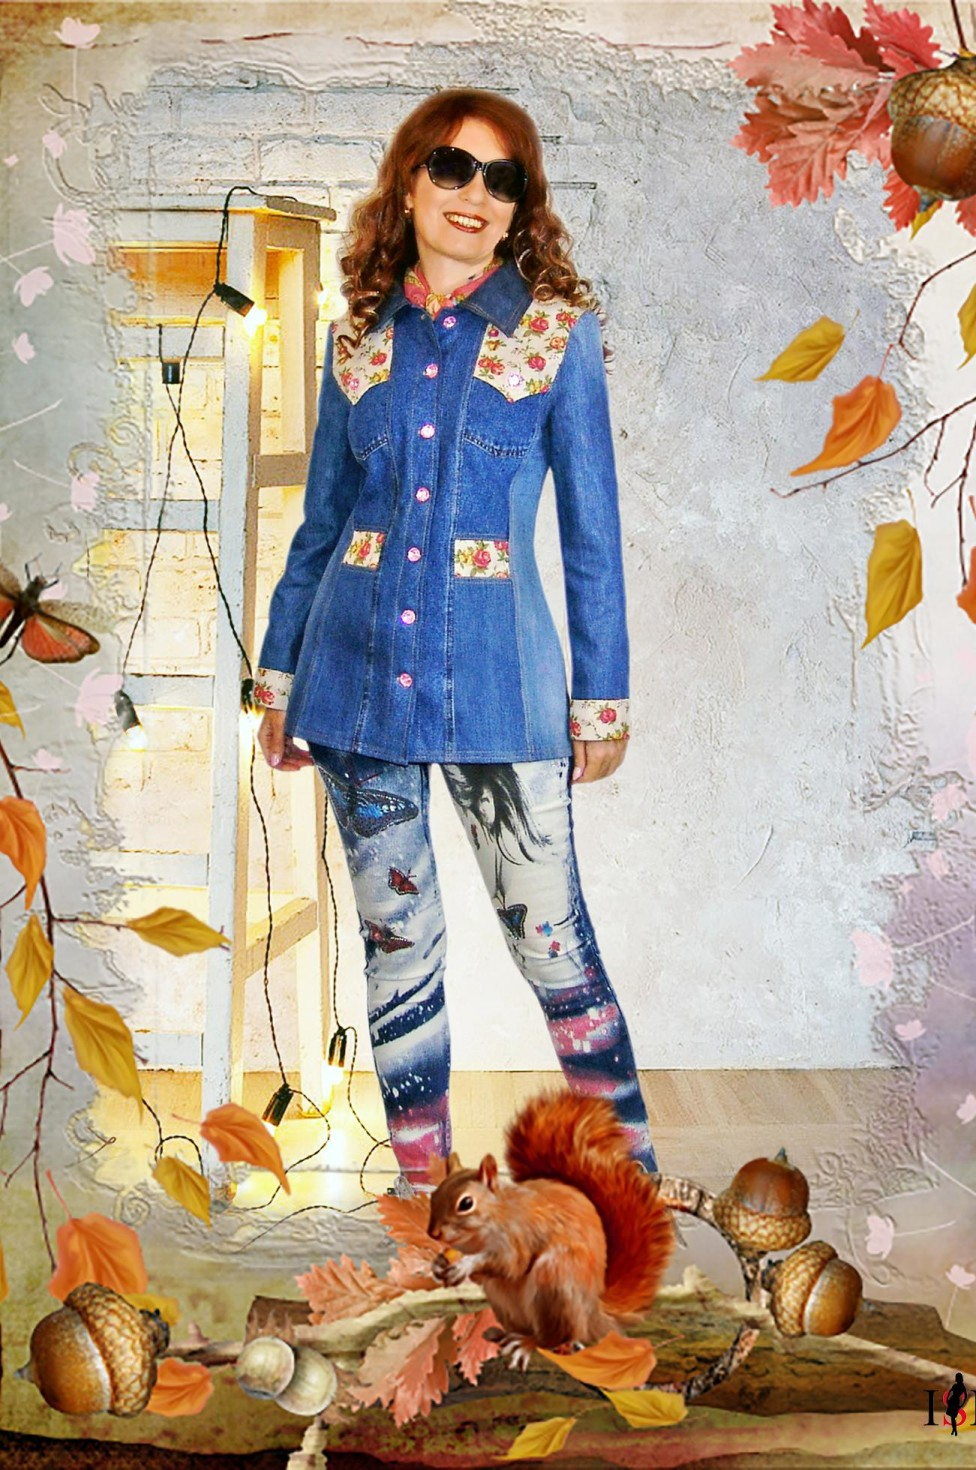 burda style Nutzerkreation rendezvous Jeansjacke mal anders-Upcycling Jacke